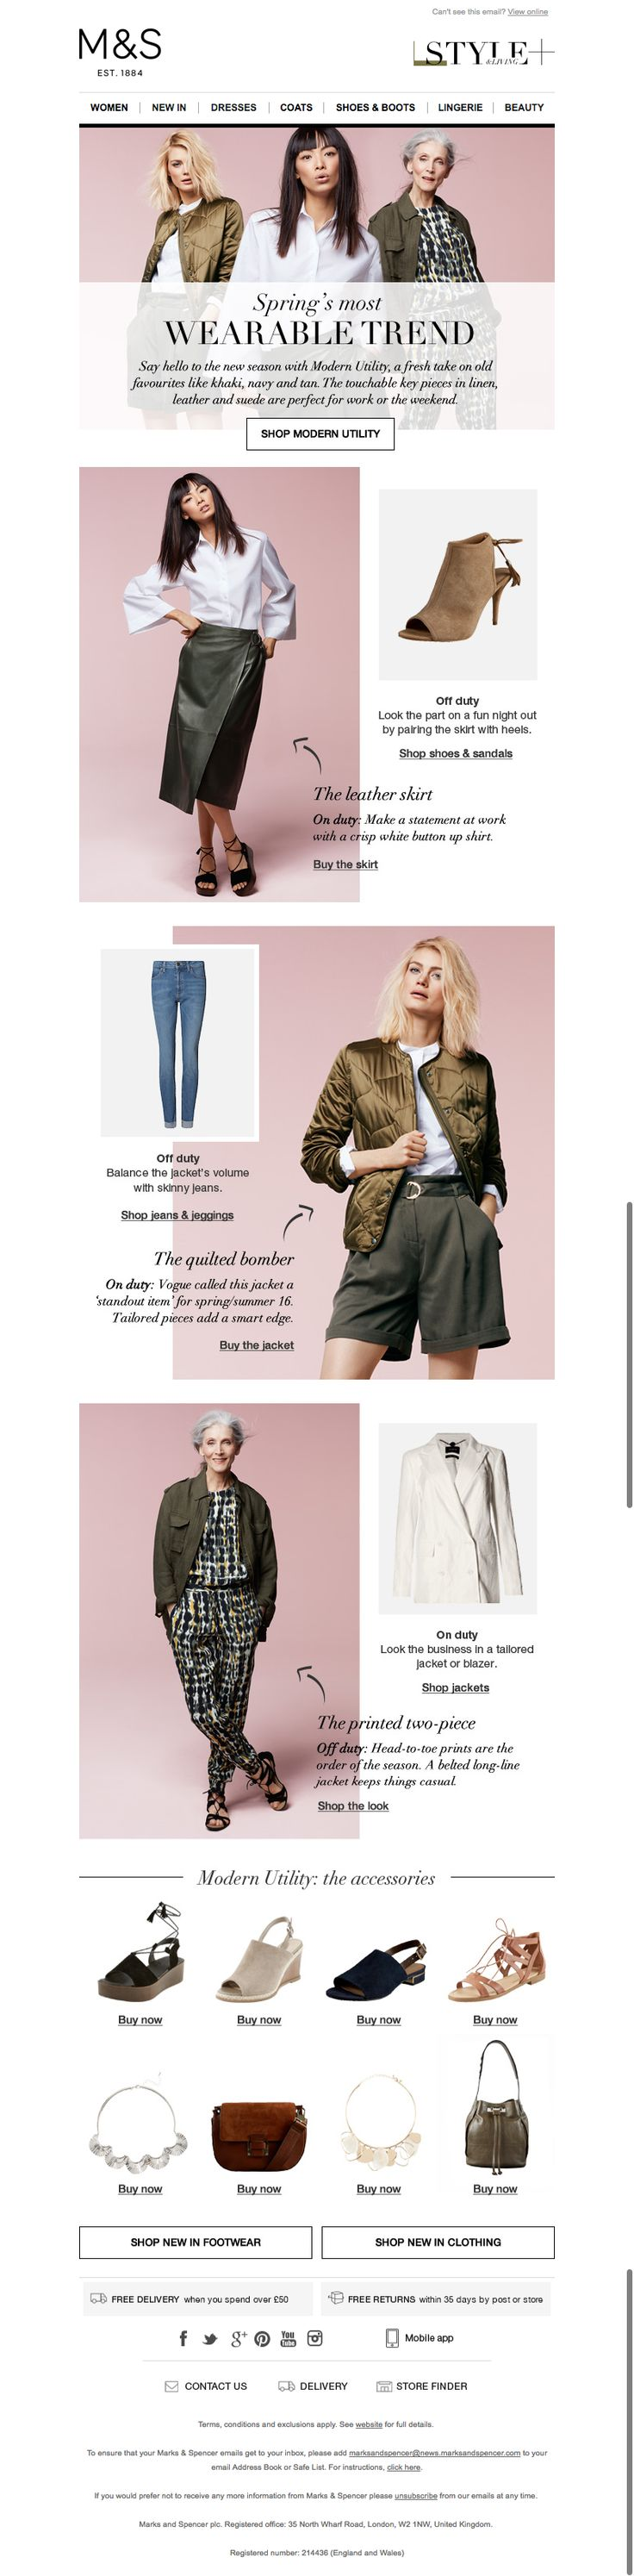 marks and spencer email march 2016 wearable trend